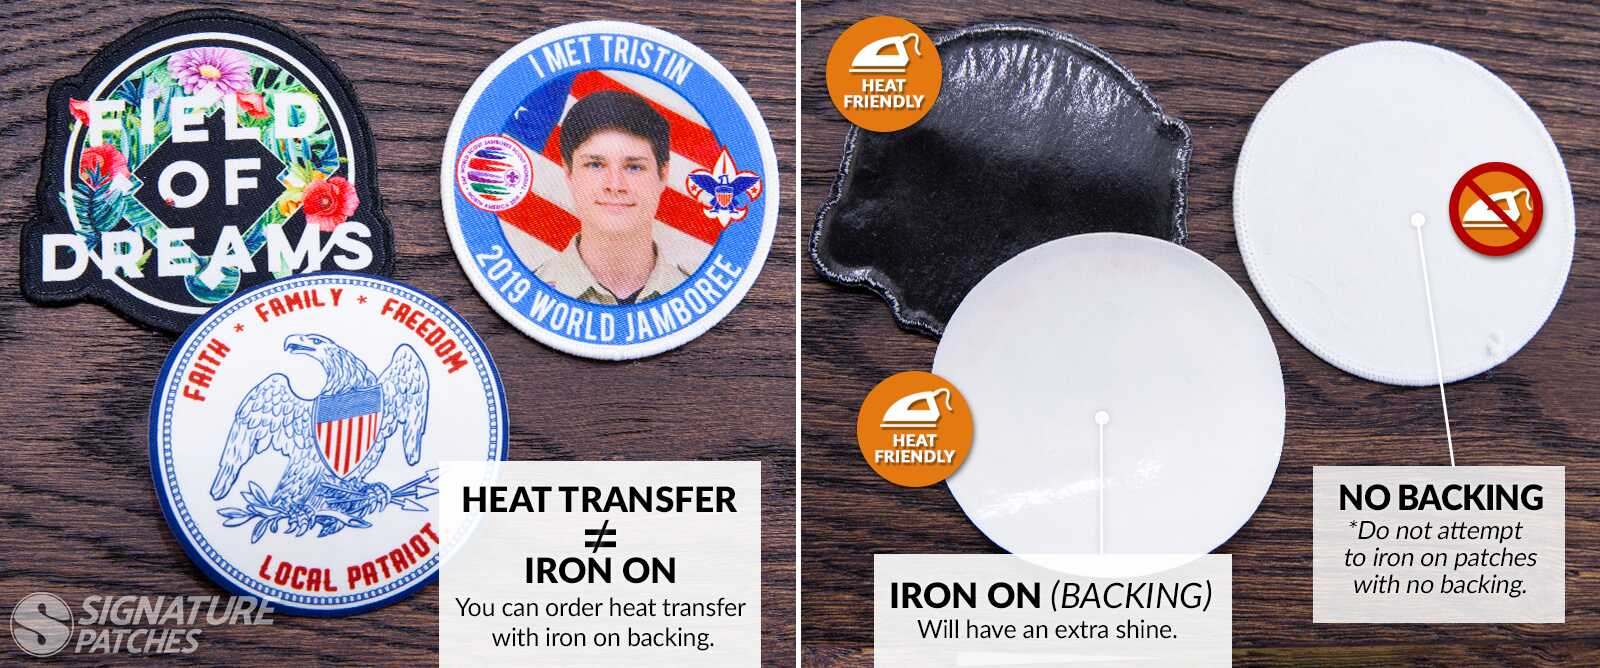 Signature Patches Heat Transfer Patches vs iron patch